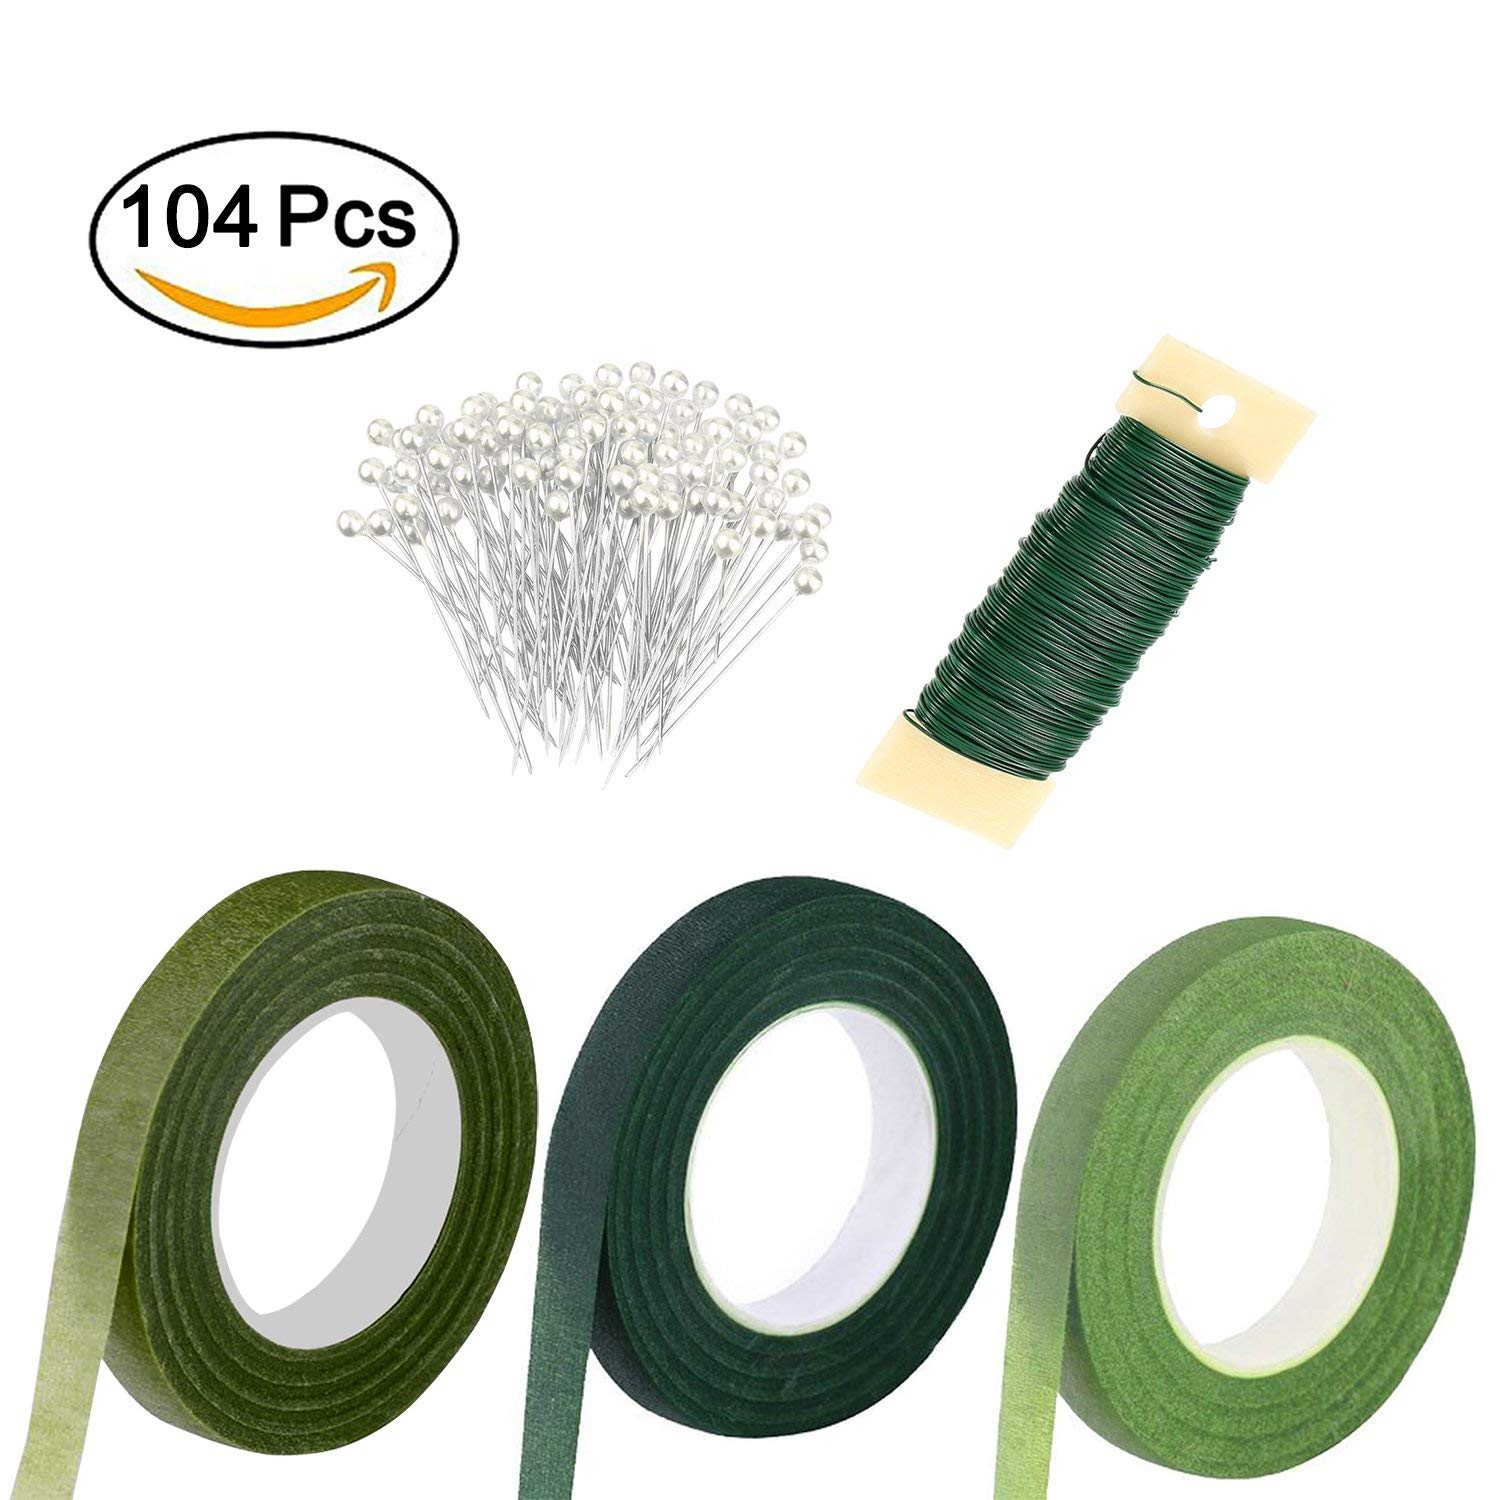 Piokio Floral Arrangement Kit 3PC 1/2 inch Floral Tape, 22 Gauge Floral Wire and 100 Pieces Ball Head Pins